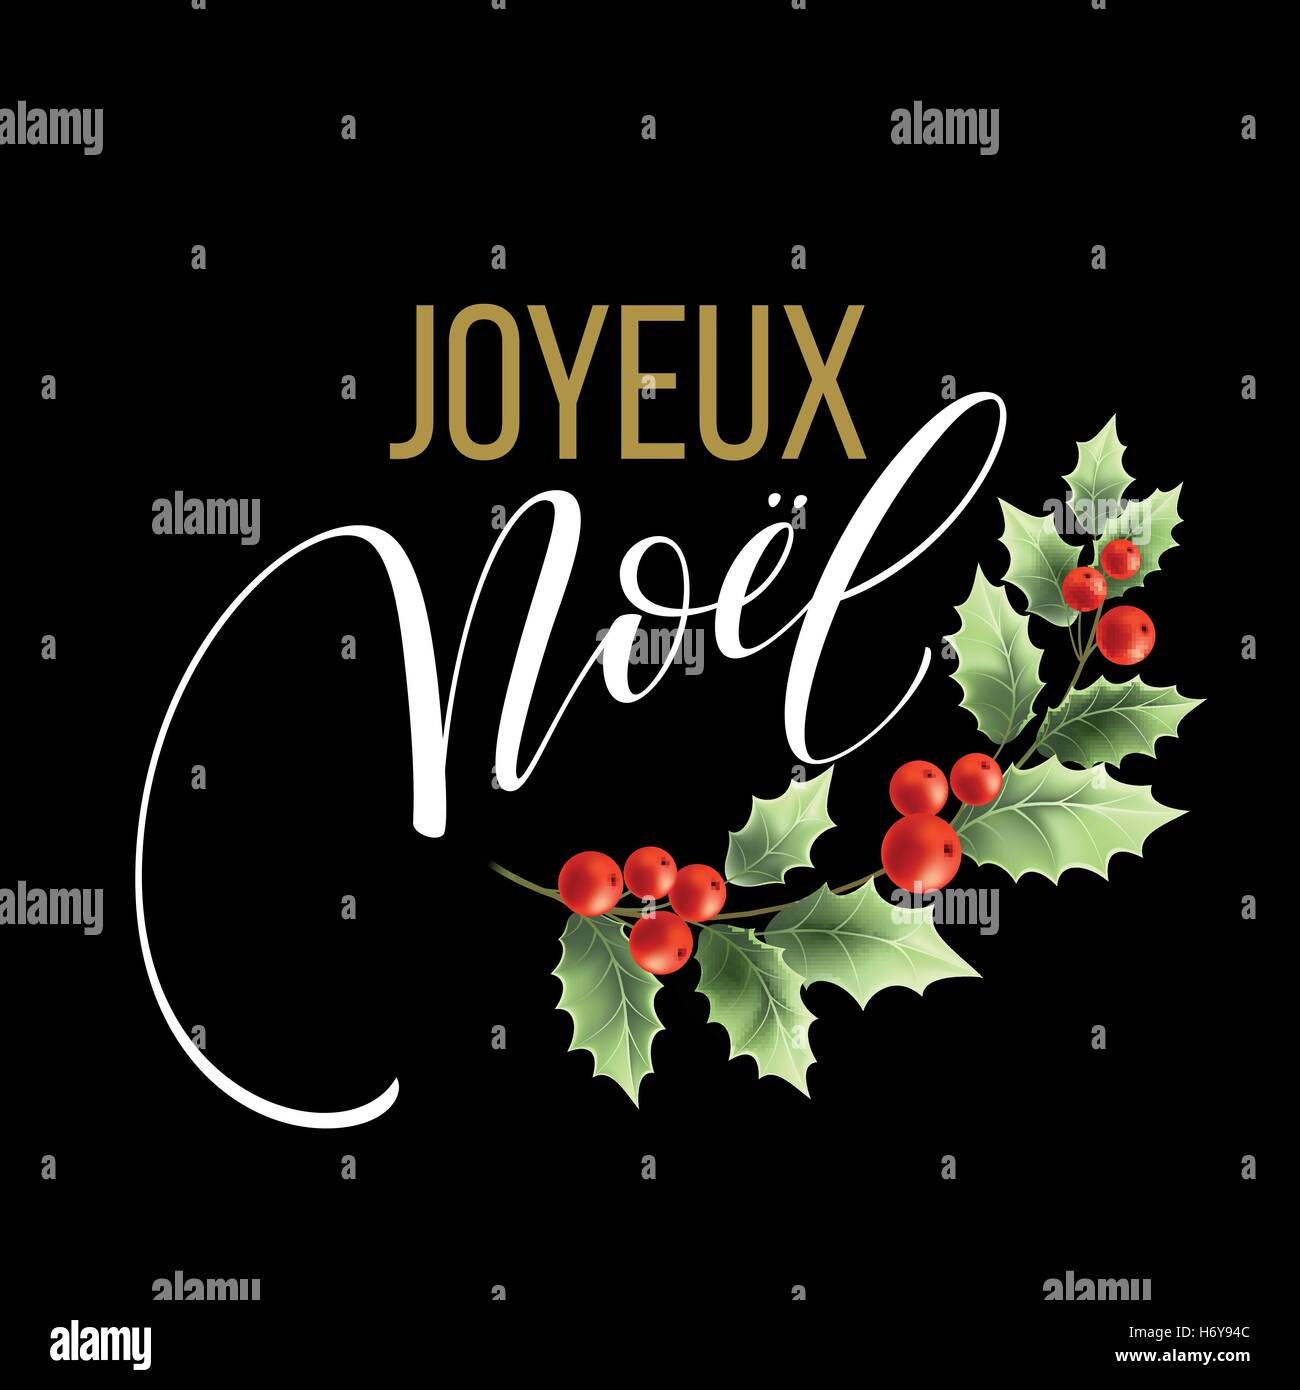 merry christmas card template with greetings in french language joyeux noel vector illustration eps10 - How To Say Merry Christmas In French